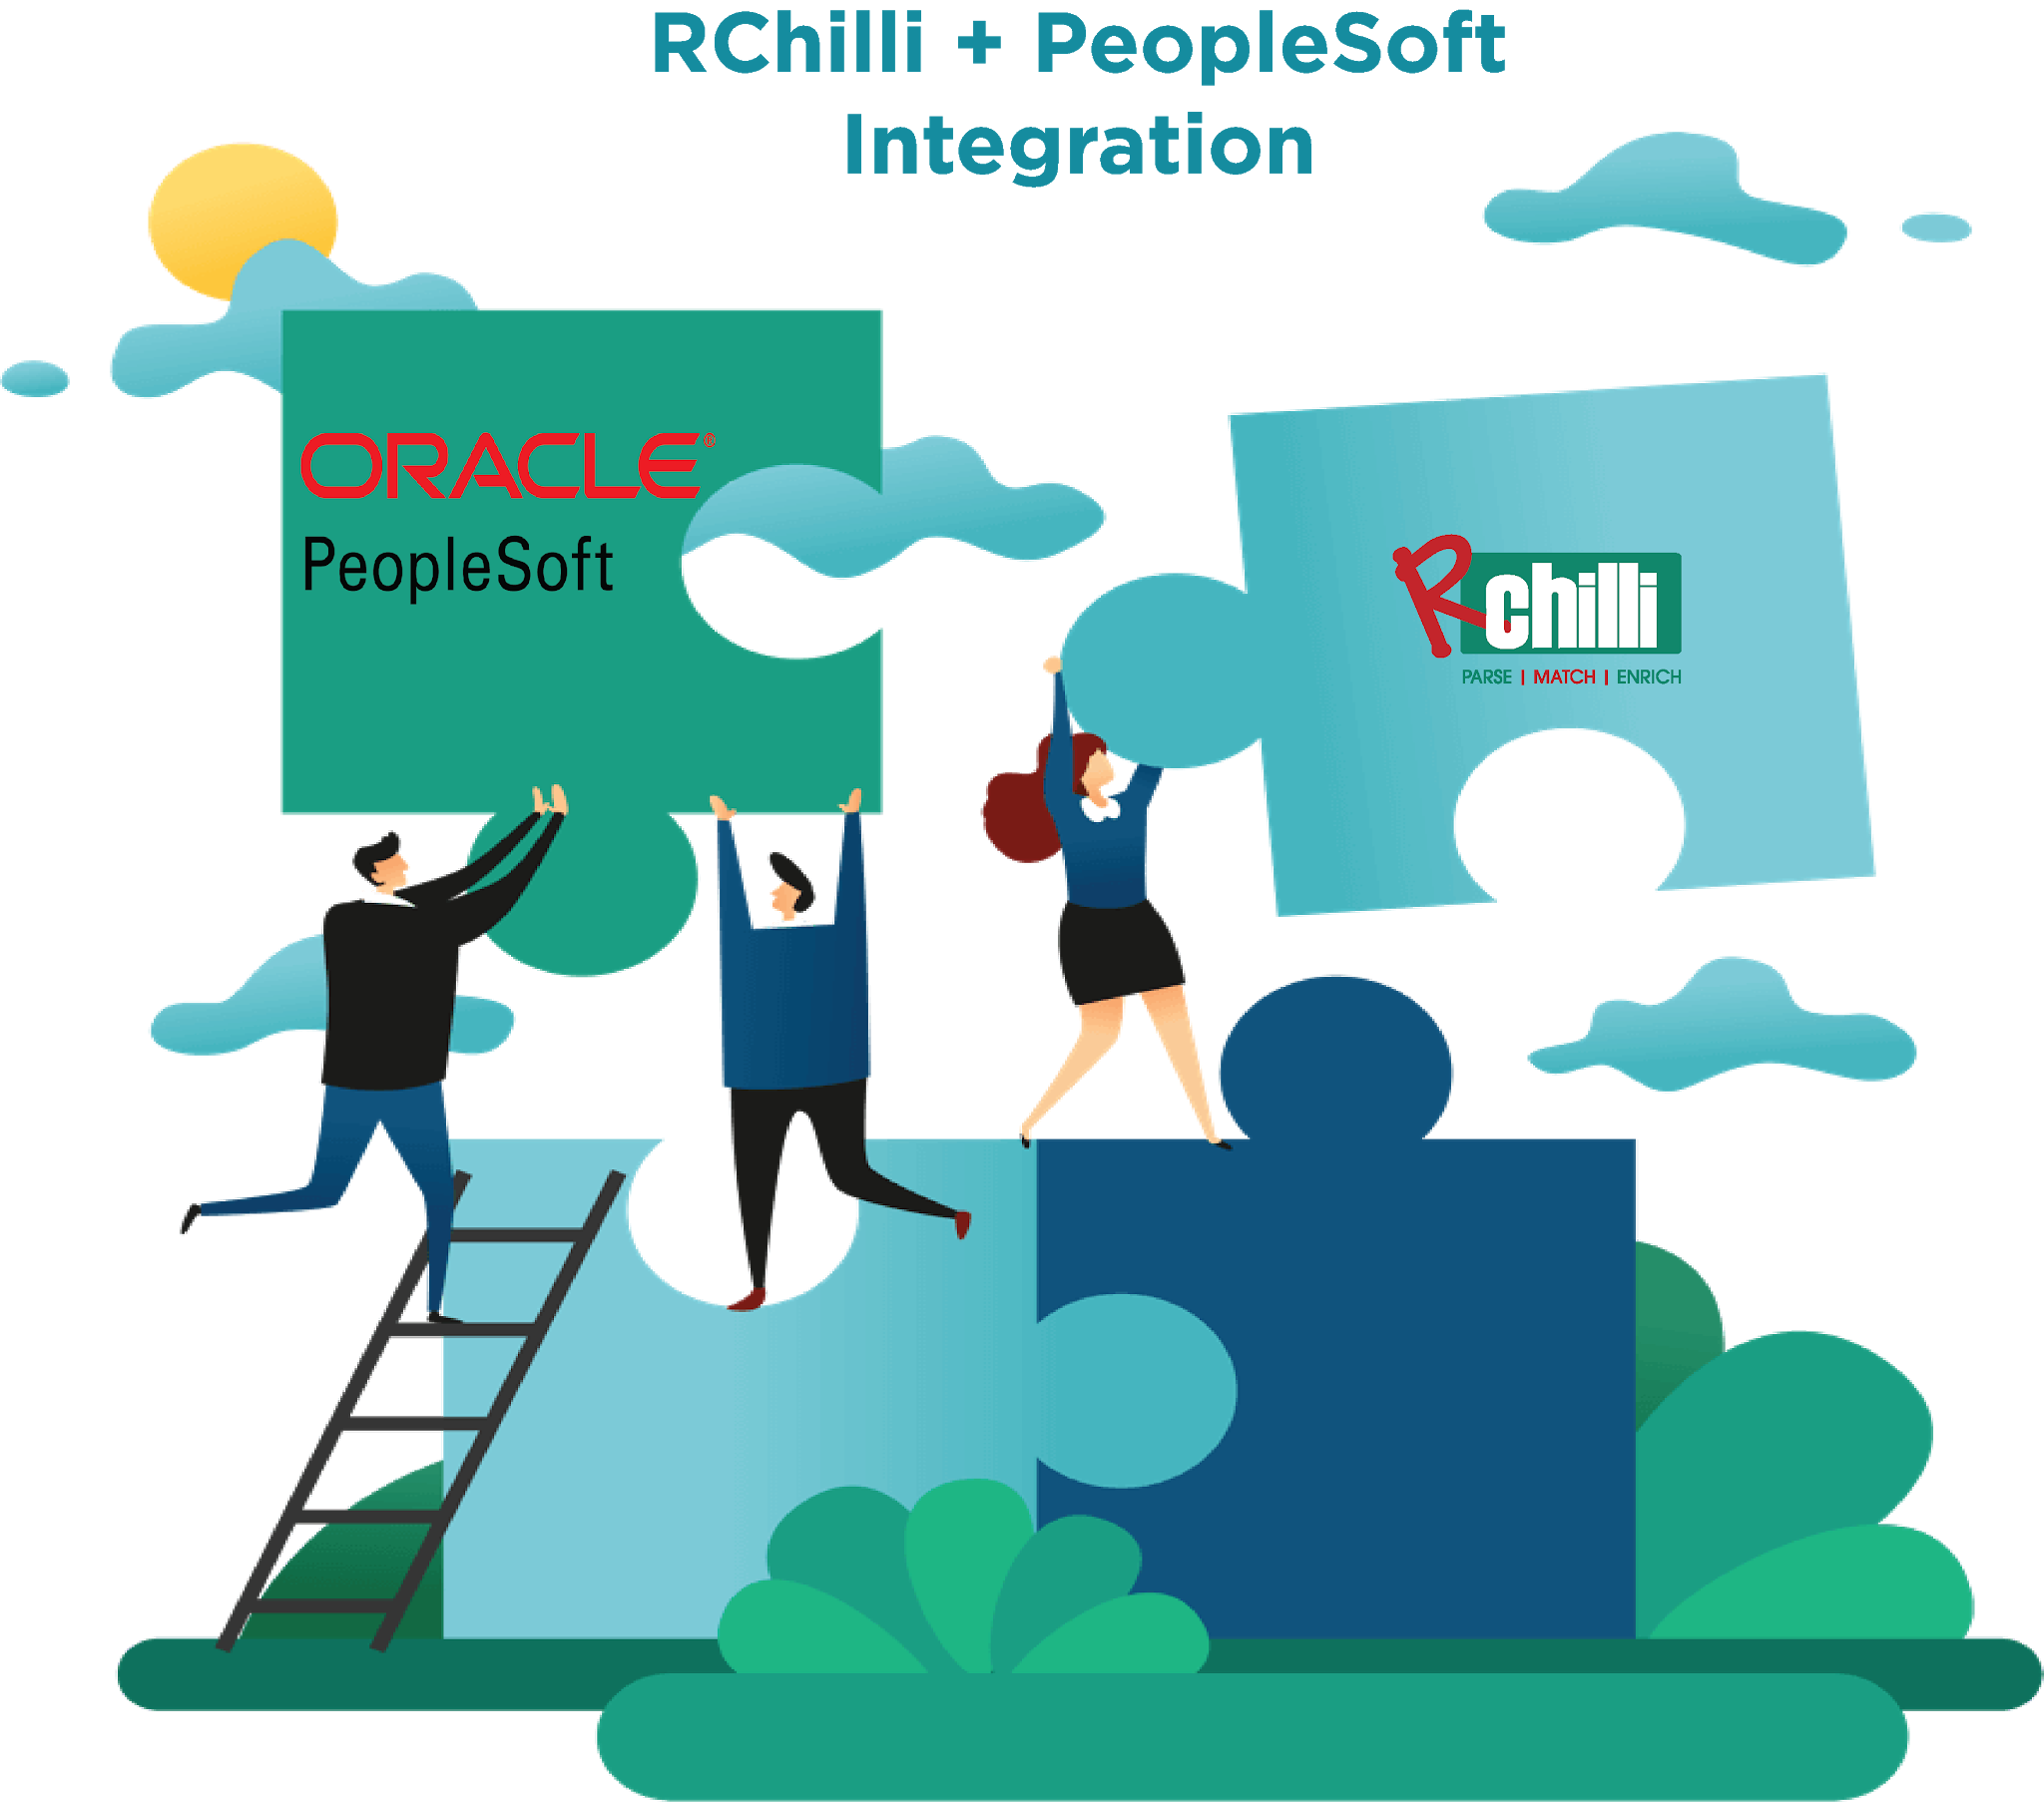 Achieve a Higher ROI with RChilli + PeopleSoft Integration